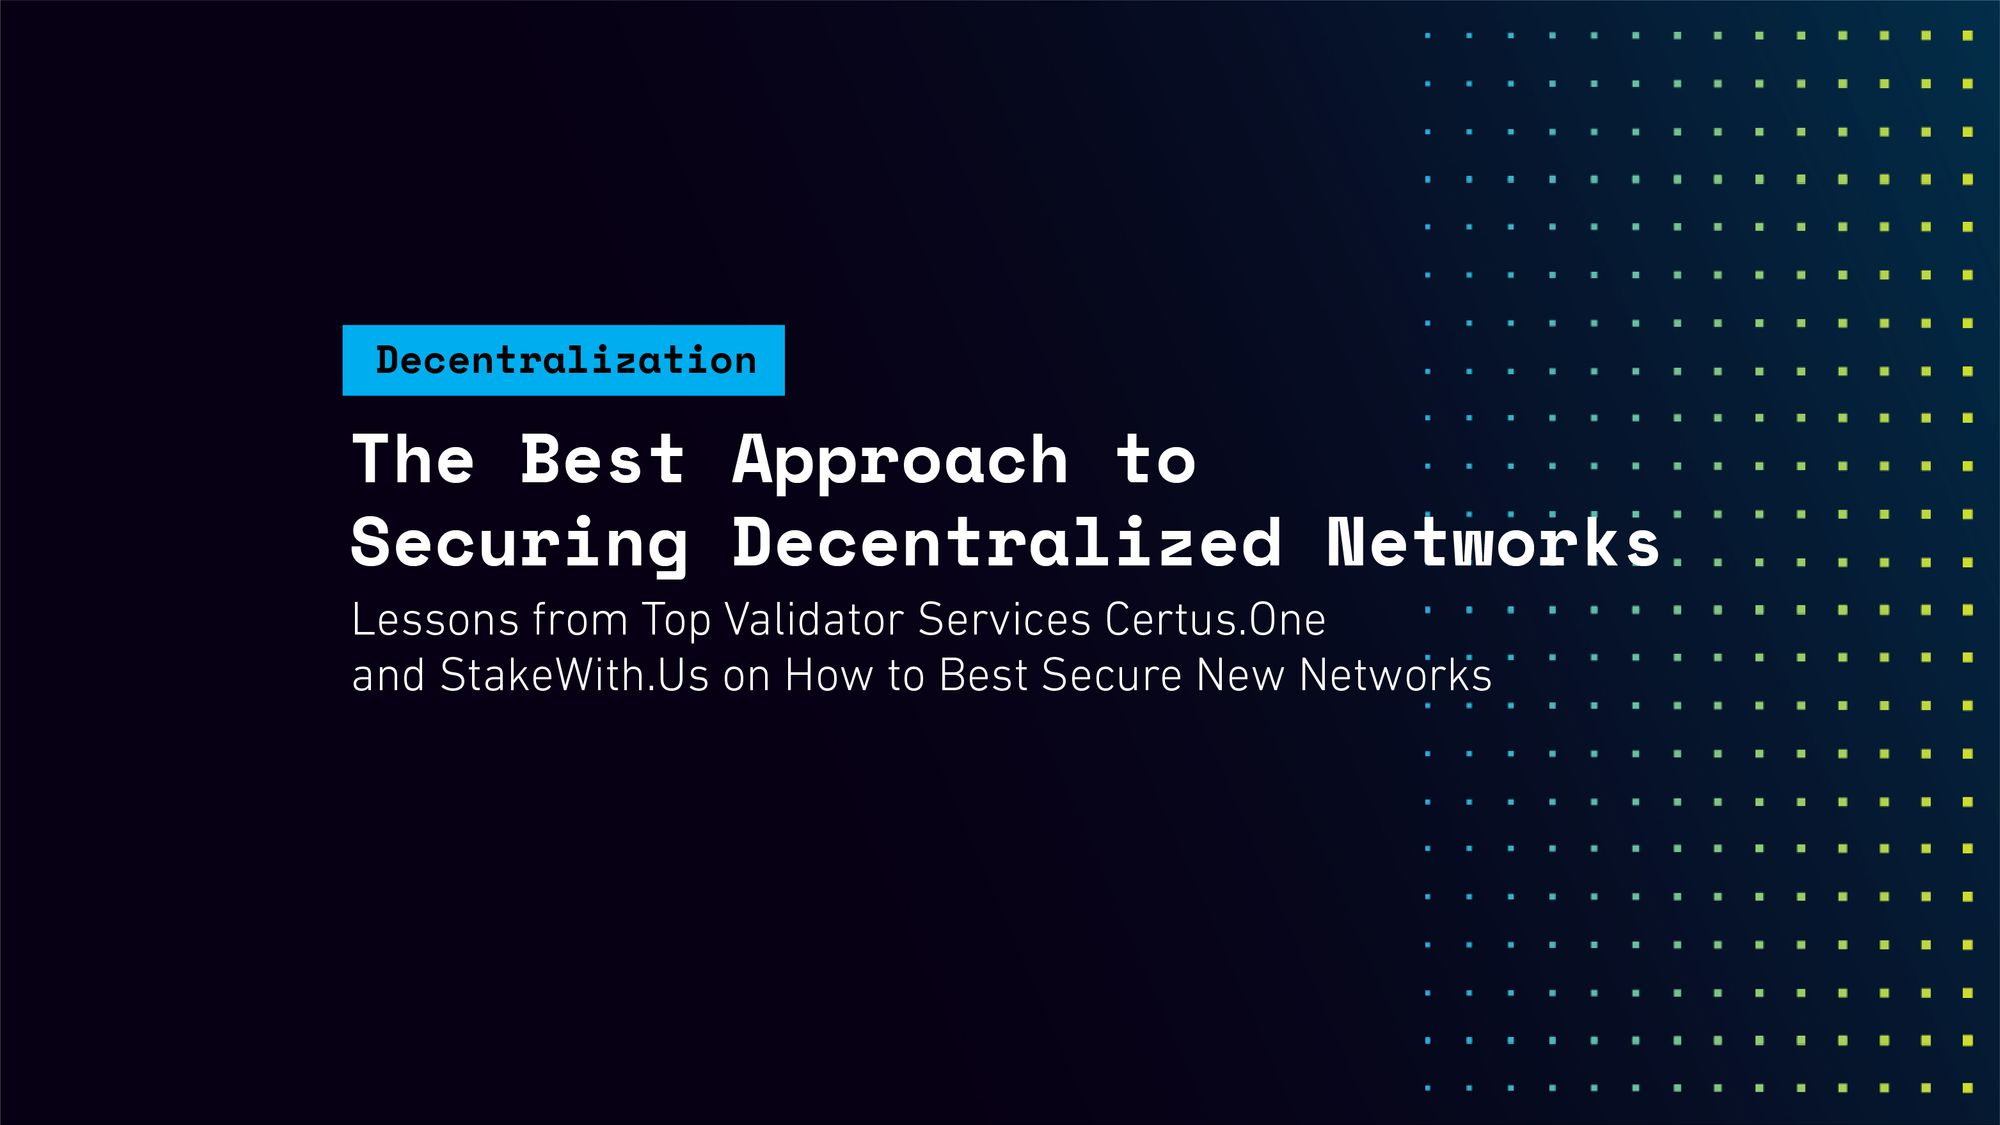 The Best Approach to Securing Decentralized Networks